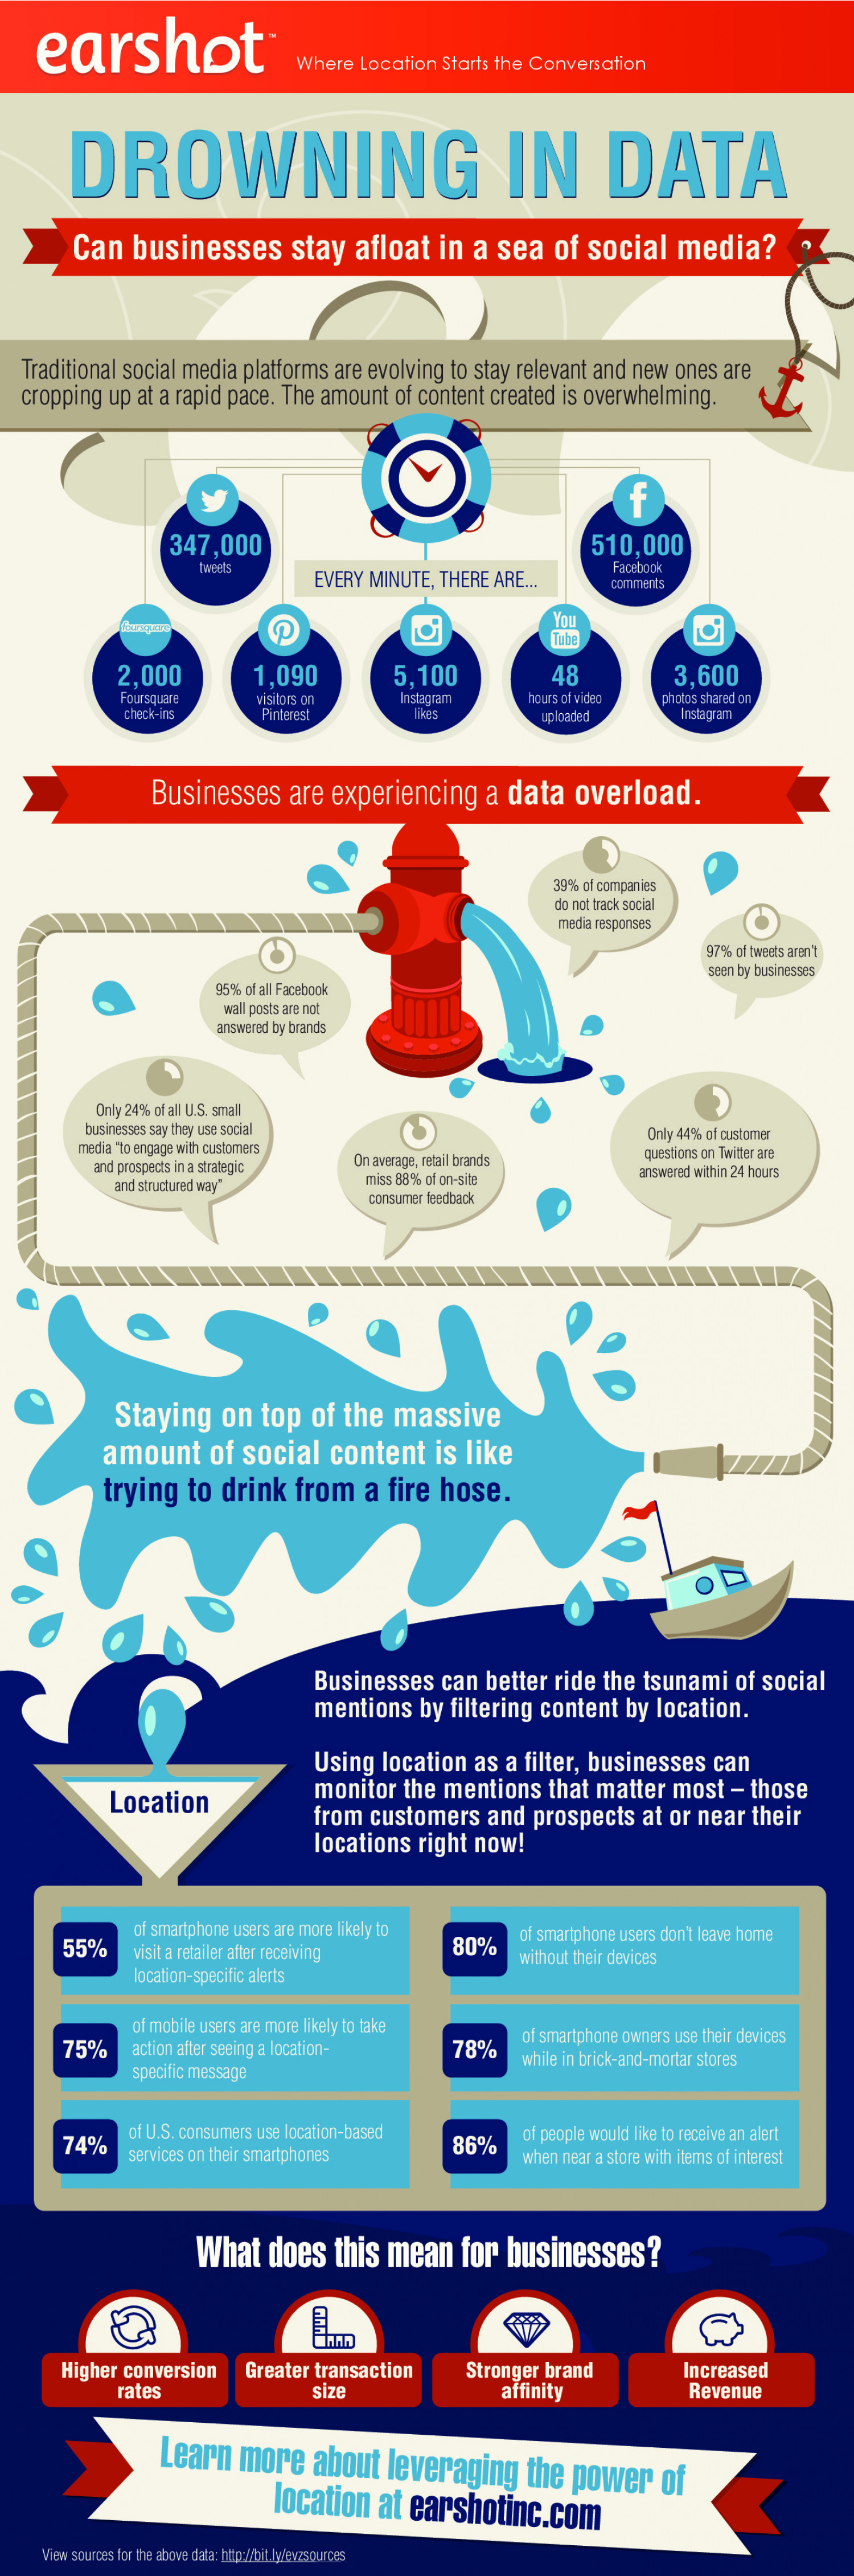 Drowning in Data: can businesses stay afloat in a sea of social media? Infographic